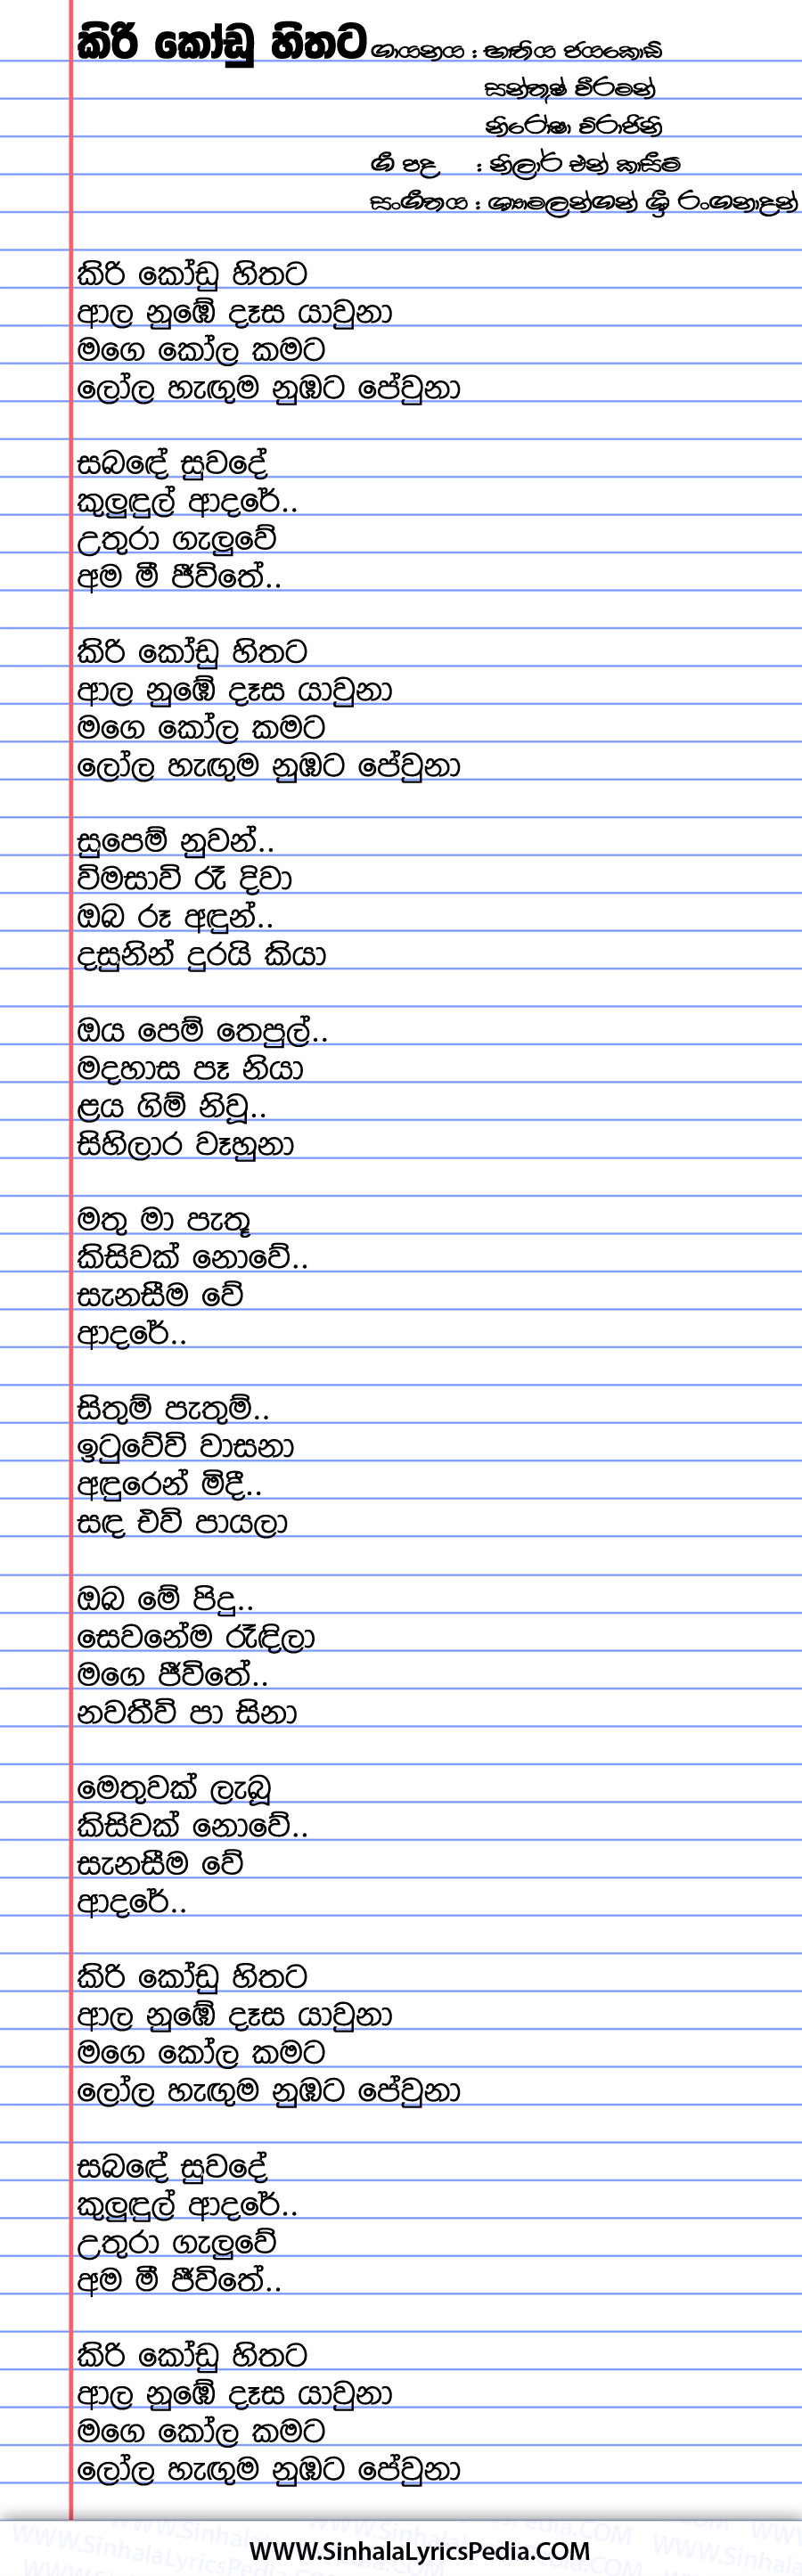 Kiri Kodu Hithata Song Lyrics